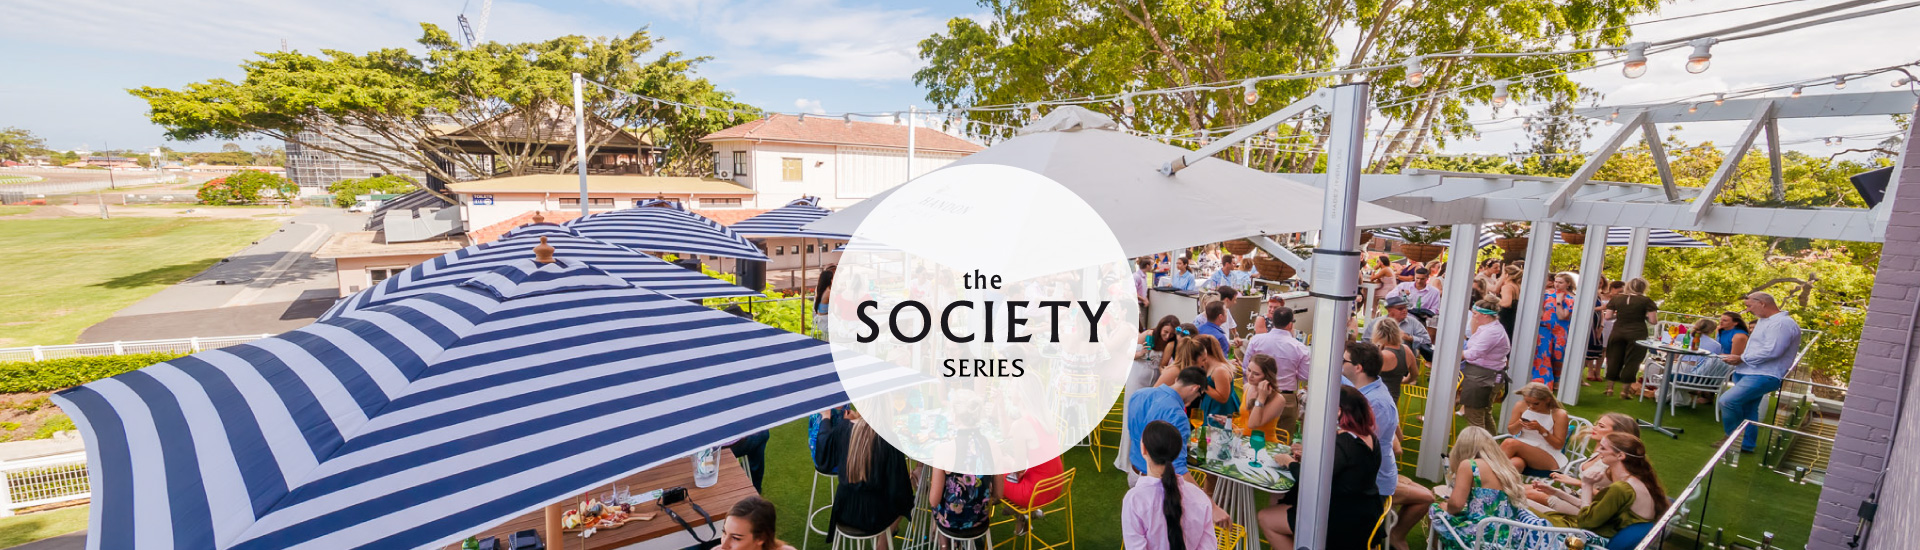 Rooftop Bar - The Society Series